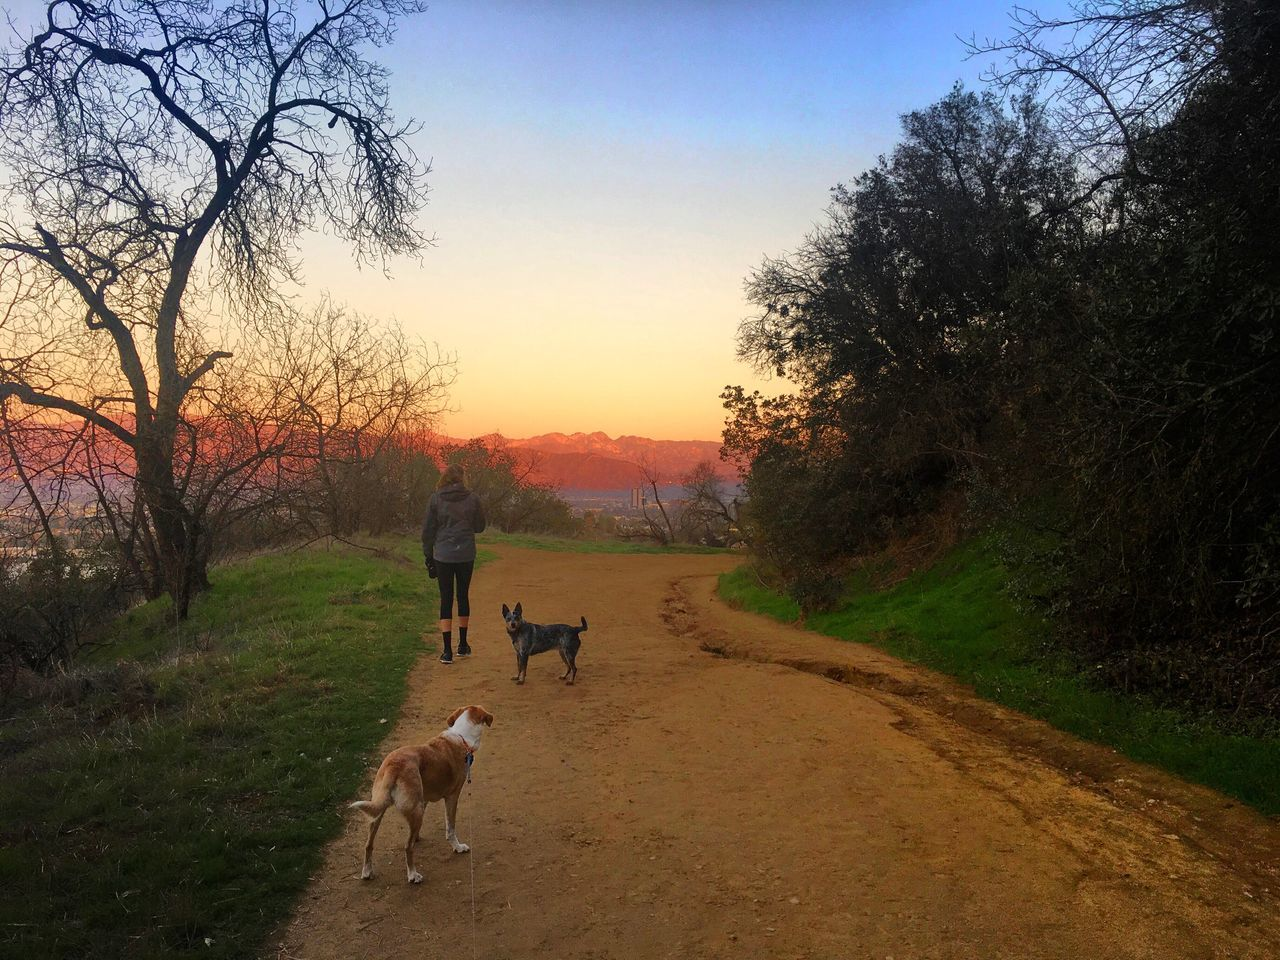 EyeEm Gallery Nature Sunset Landscape Tree Sky Tranquil Scene Pets Beauty In Nature Outdoors Grass Dog EyeEm Nature Lover EyeEm Best Shots - Nature EyeEm Best Shots - Landscape California Hiking